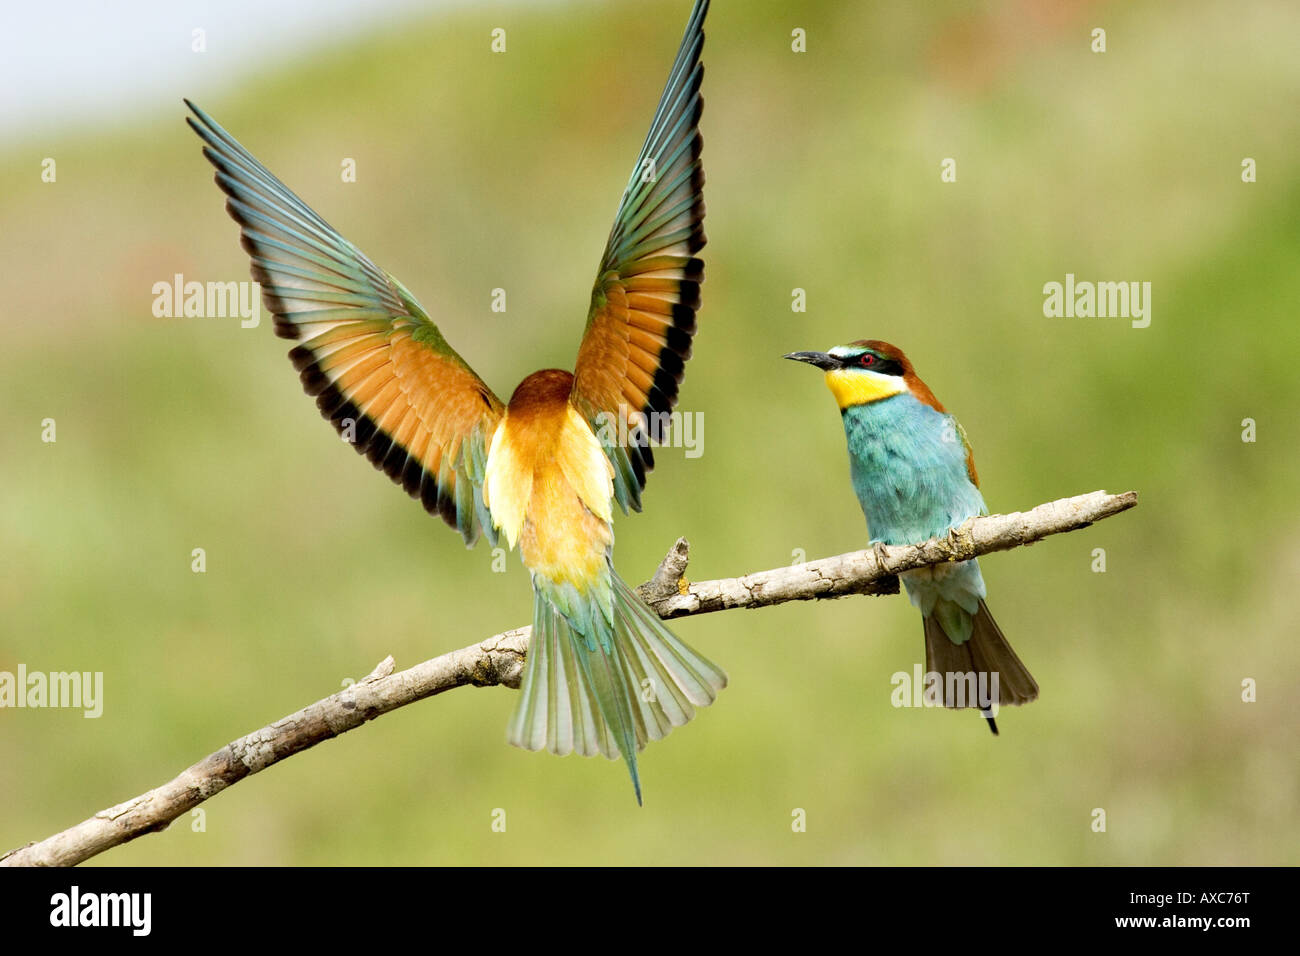 european bee eater merops apiaster flapping wings on branch stock